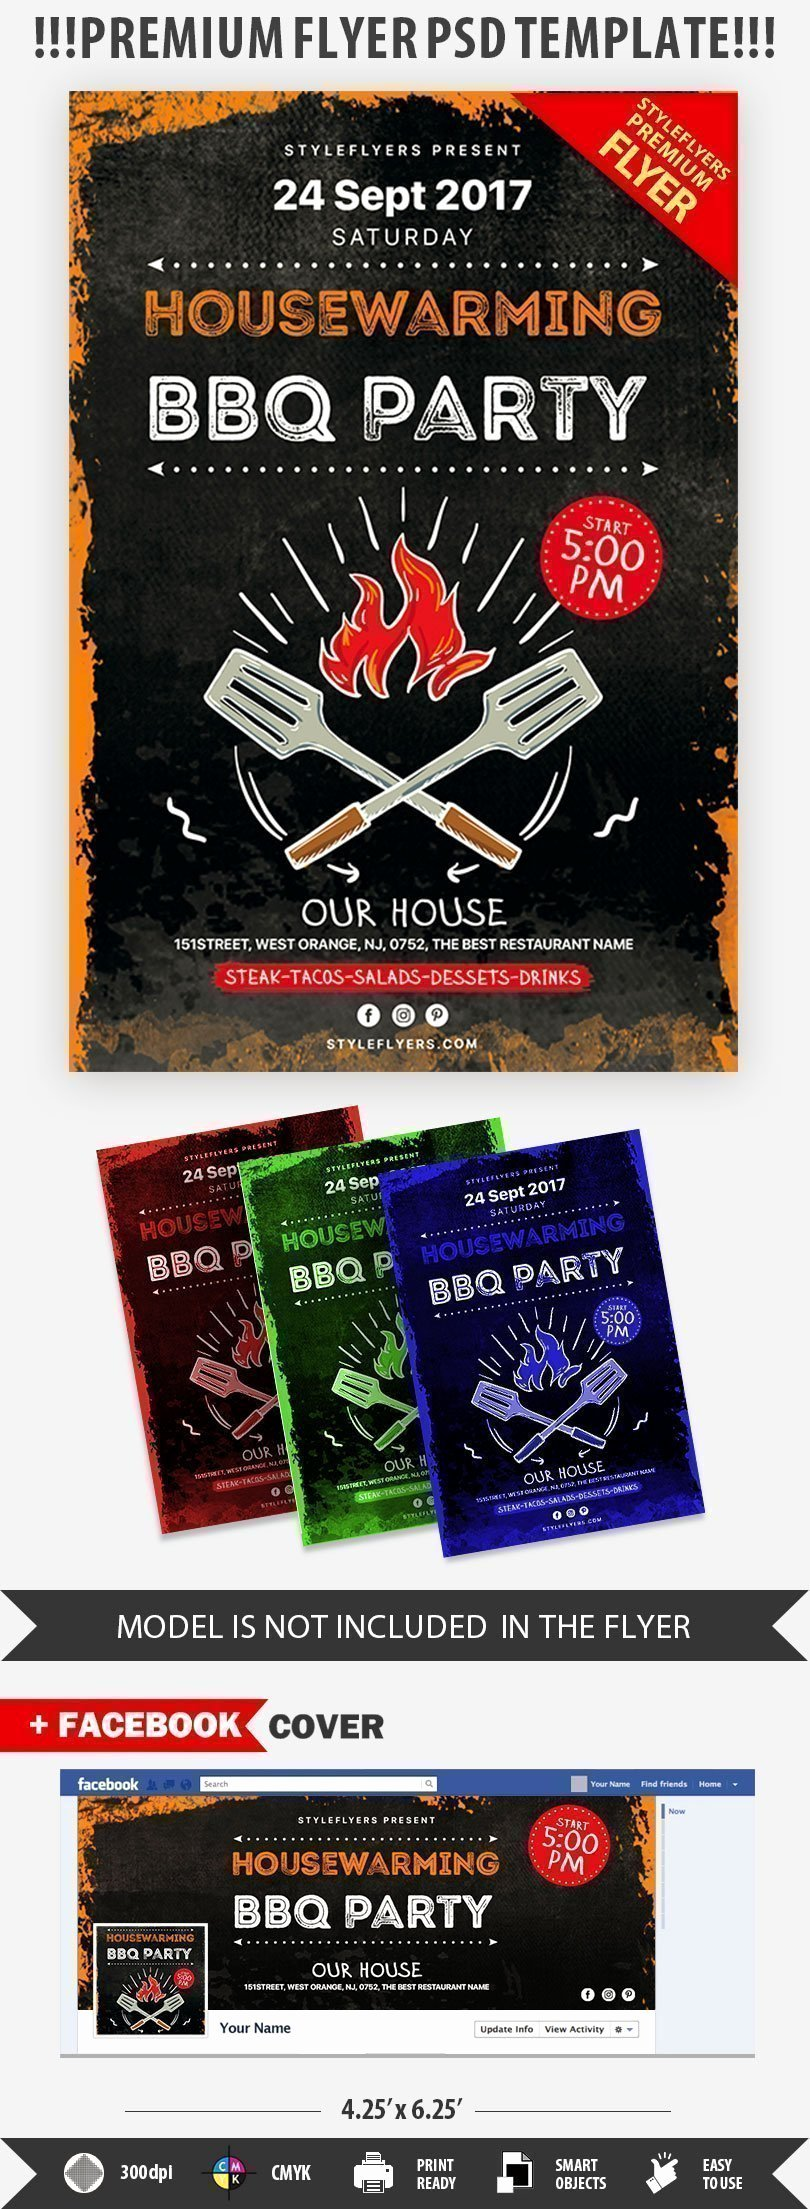 House Party Flyer Template Inspirational Housewarming Bbq Party Psd Flyer Template Styleflyers